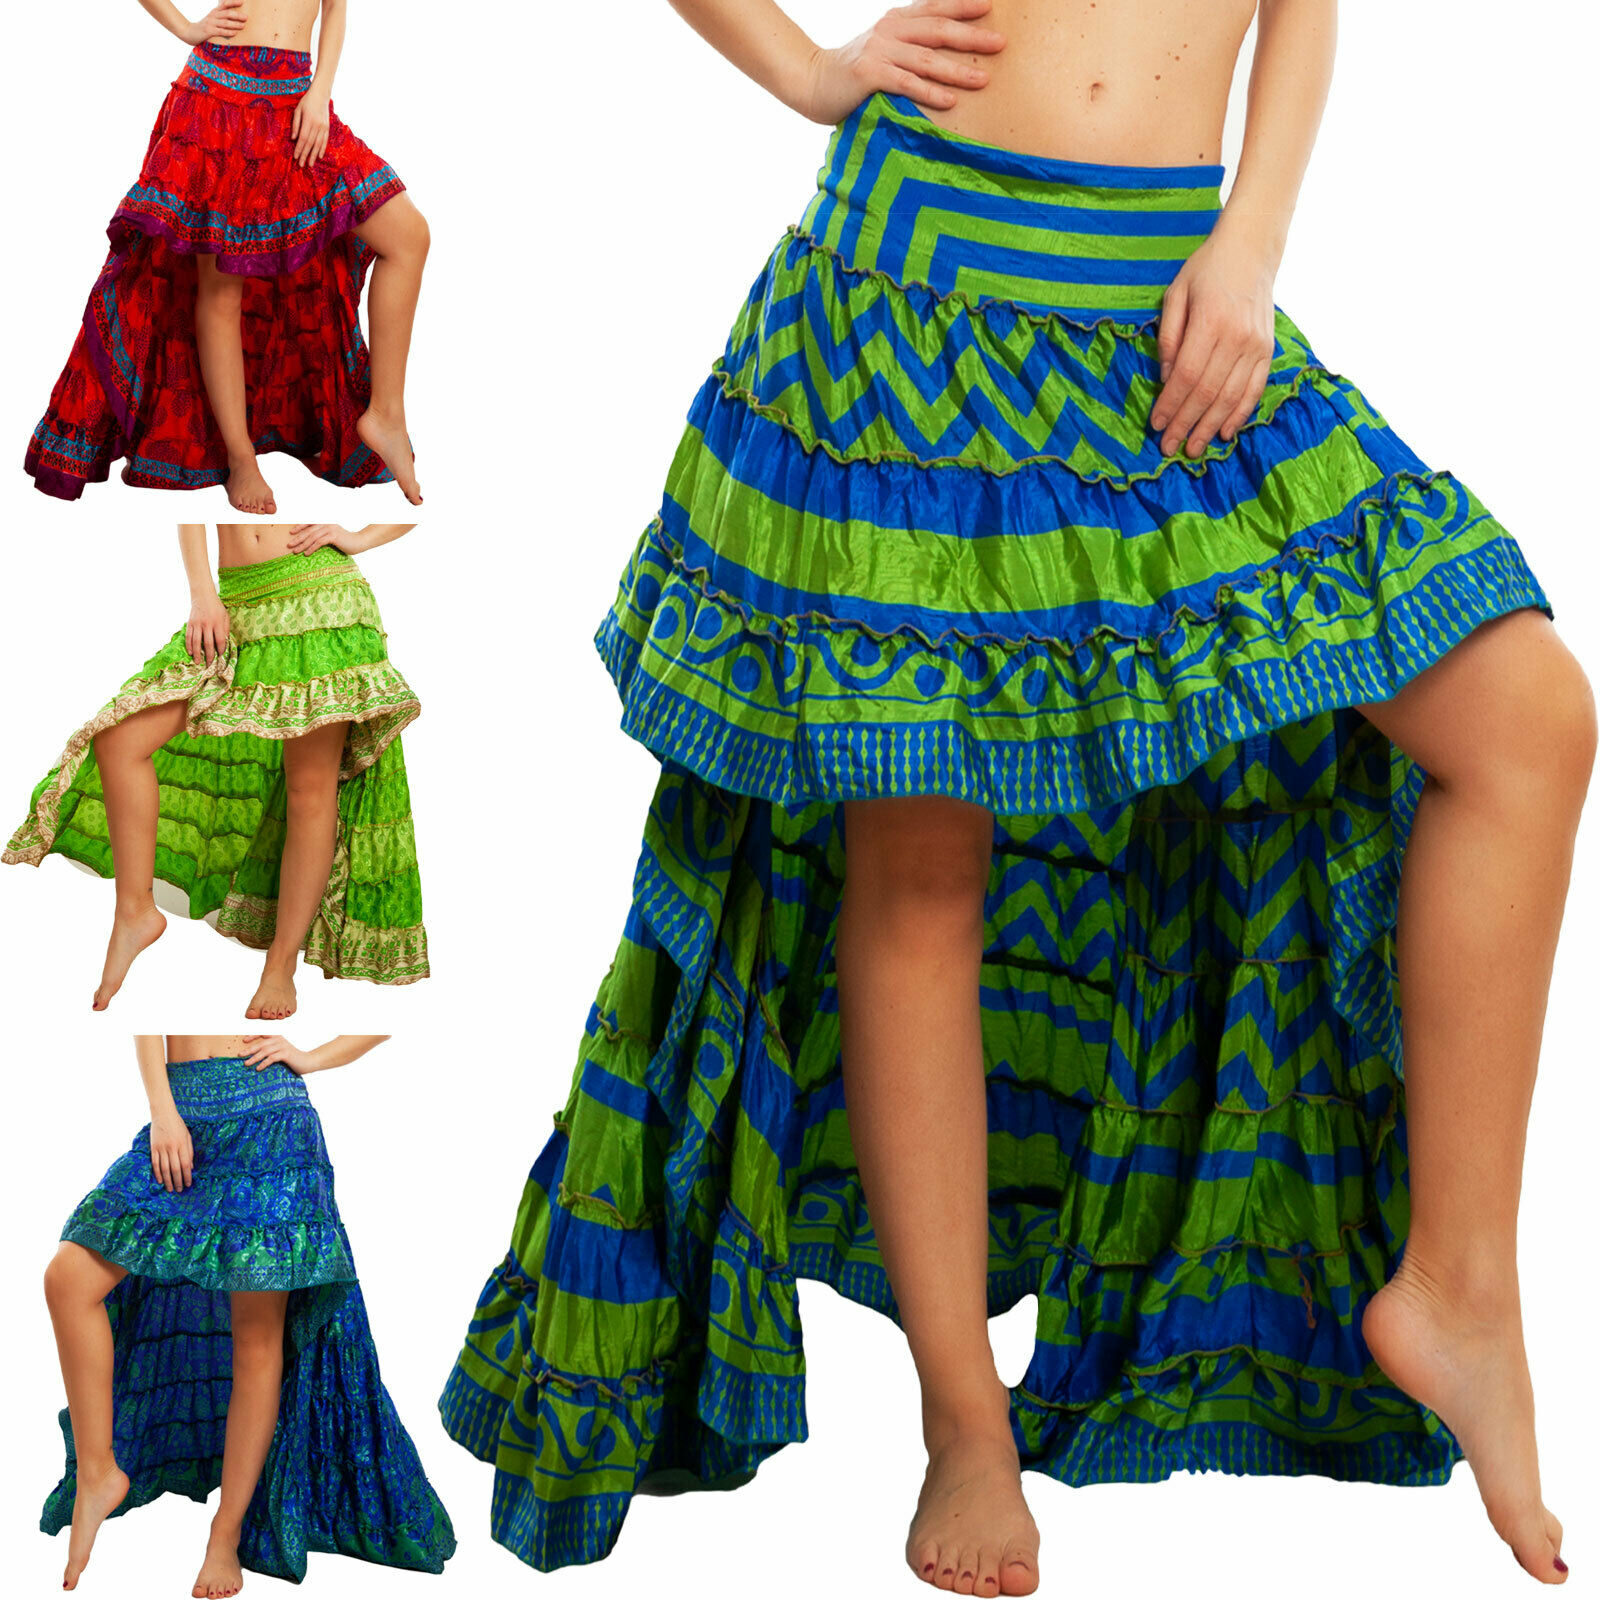 27,90 € per Gonna Donna Asimmetrica Ibiza Fantasia Indiana Gipsy Boho Chic Toocool Rk-101 su eBay.it